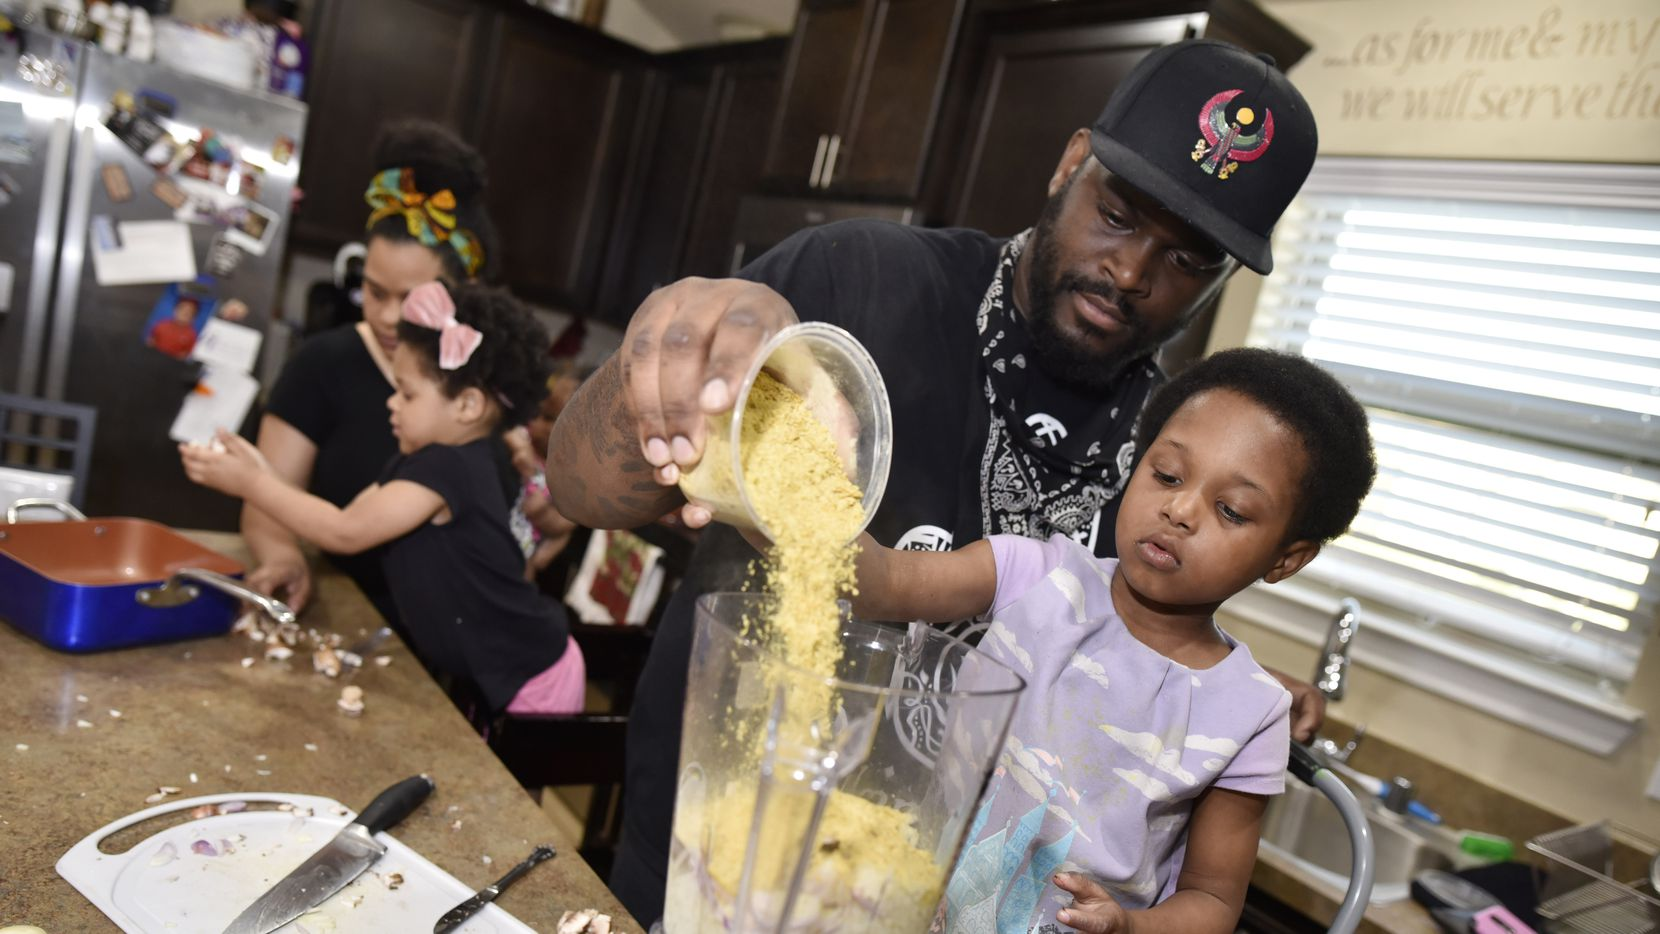 James McGee, shown helping his daughter pour ingredients for a vegan pasta at their DeSoto home in 2019, owns Peace Love & Eatz, a smoothie shop in the city.